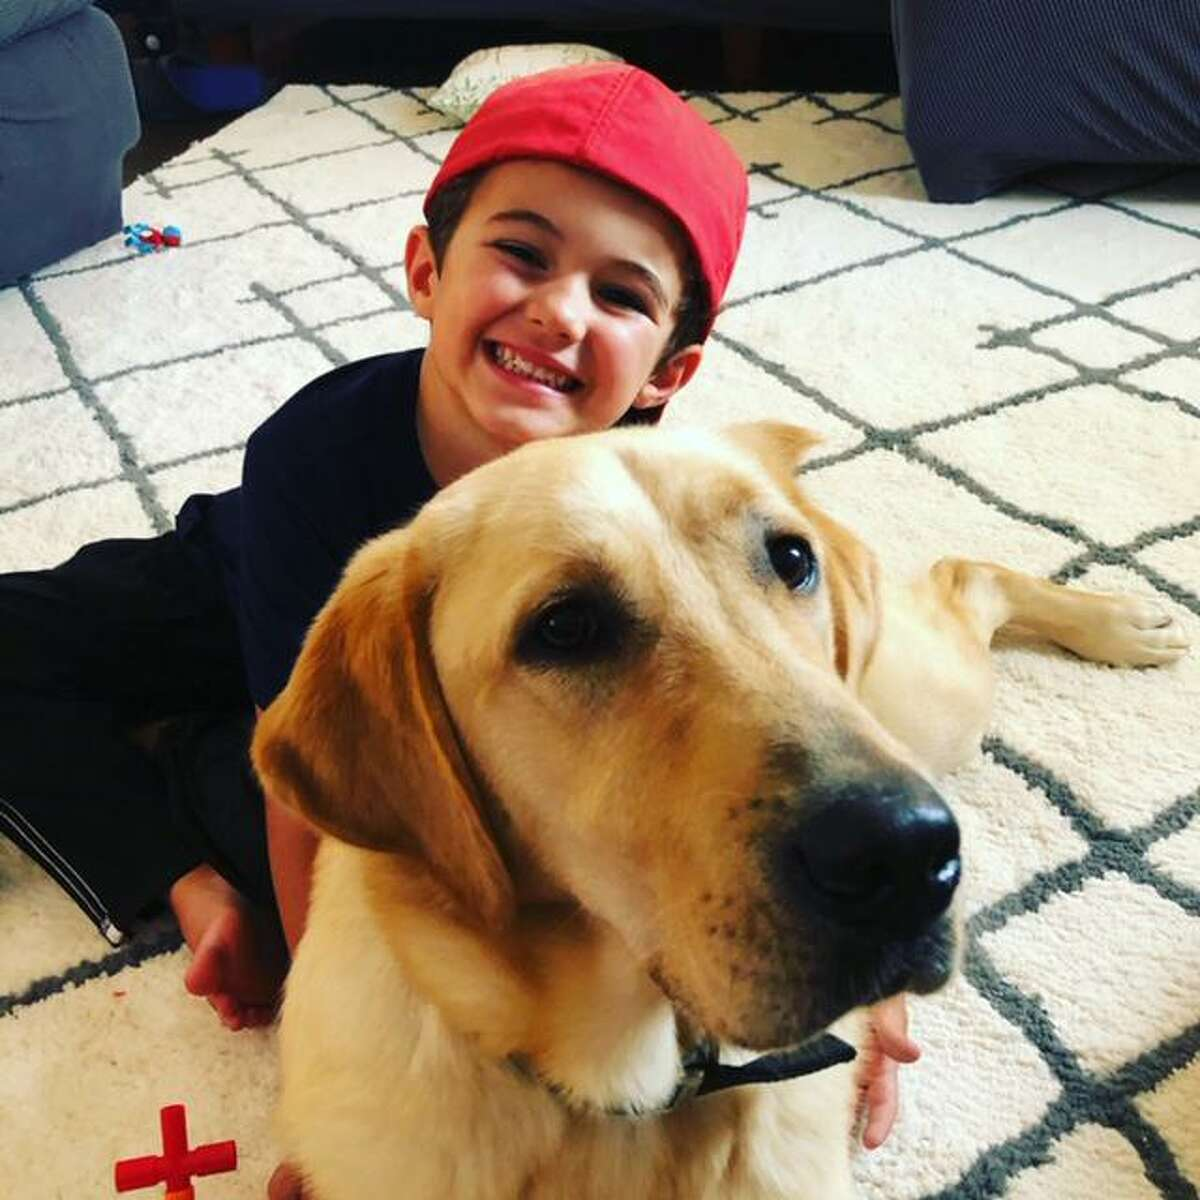 Leo Golusinski, 5, joins his service dog, Champion. Leo and his mom Lisa Halsgrove recently completed ECAD's Canine MAGIC Team Training classes and will celebrate with a virtual graduation ceremony at 6 p.m. Friday. To see the graduation, go to www.facebook.com/ECADServiceDogs